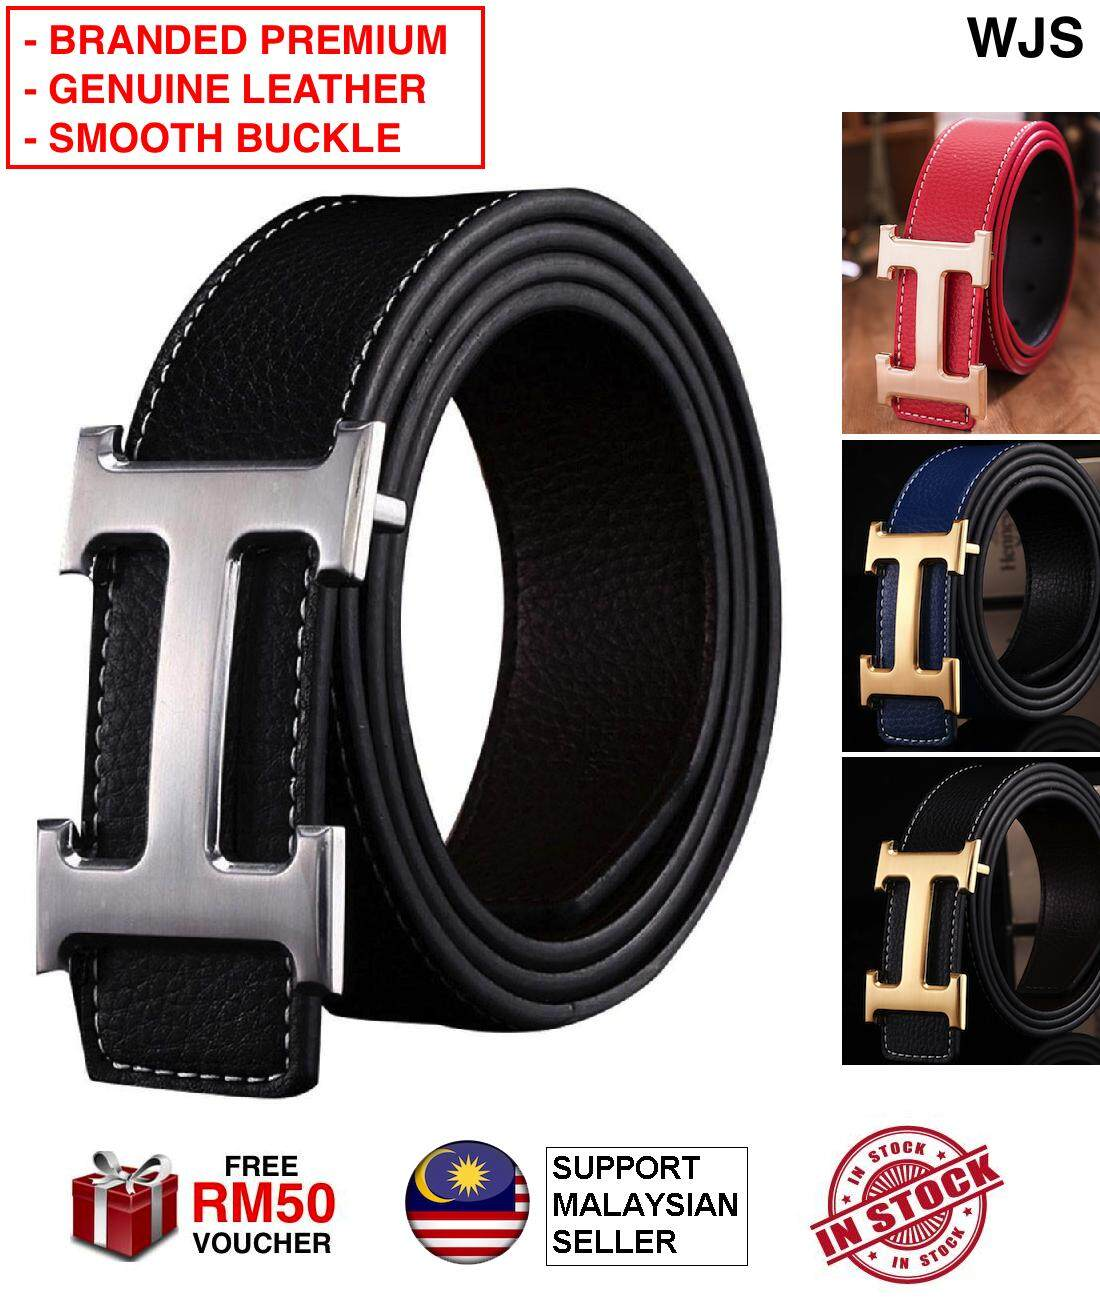 (PREMIUM BRANDED) WJS Original Genuine PU Leather H Belt Smooth Buckle Belt Men Belt Gentleman Belt Man Belt Office Belt Working Belt Professional Belt Casual Belt Hermas Belt Herms Belt Herme Belt Hermess Belt BLACK BLUE WHITE RED [FREE RM 50 VOUCHER]